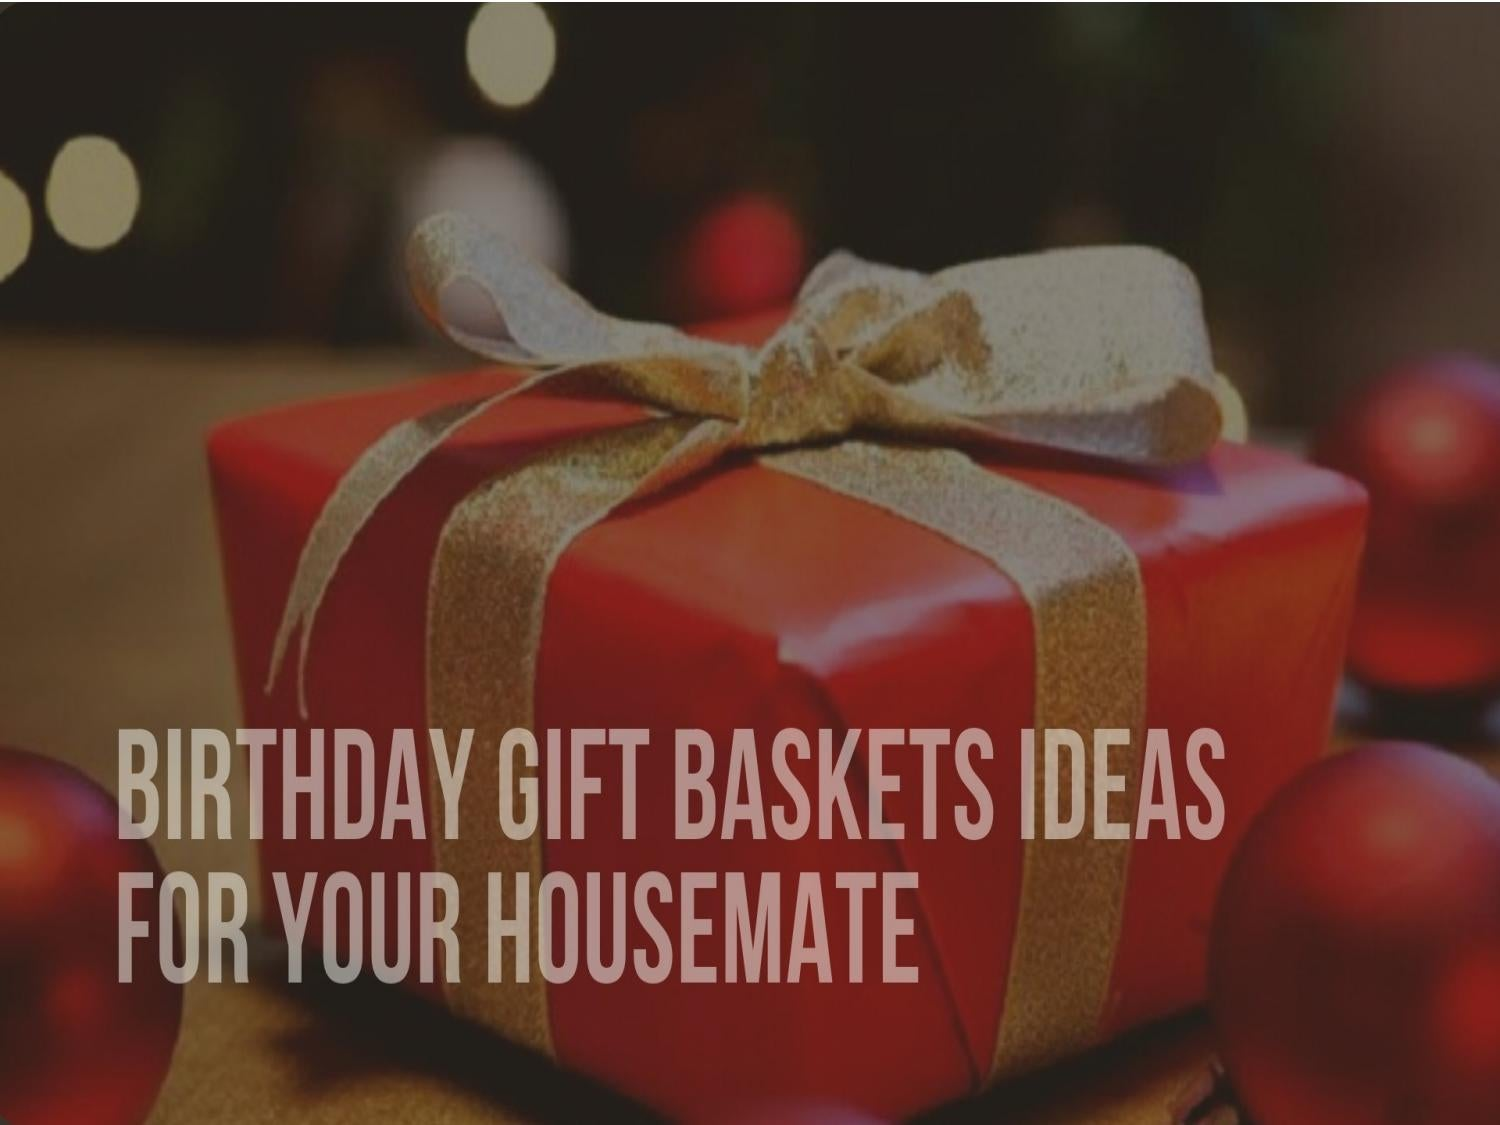 Birthday Gift Ideas Or Hampers For The Housemate By AuIdeas